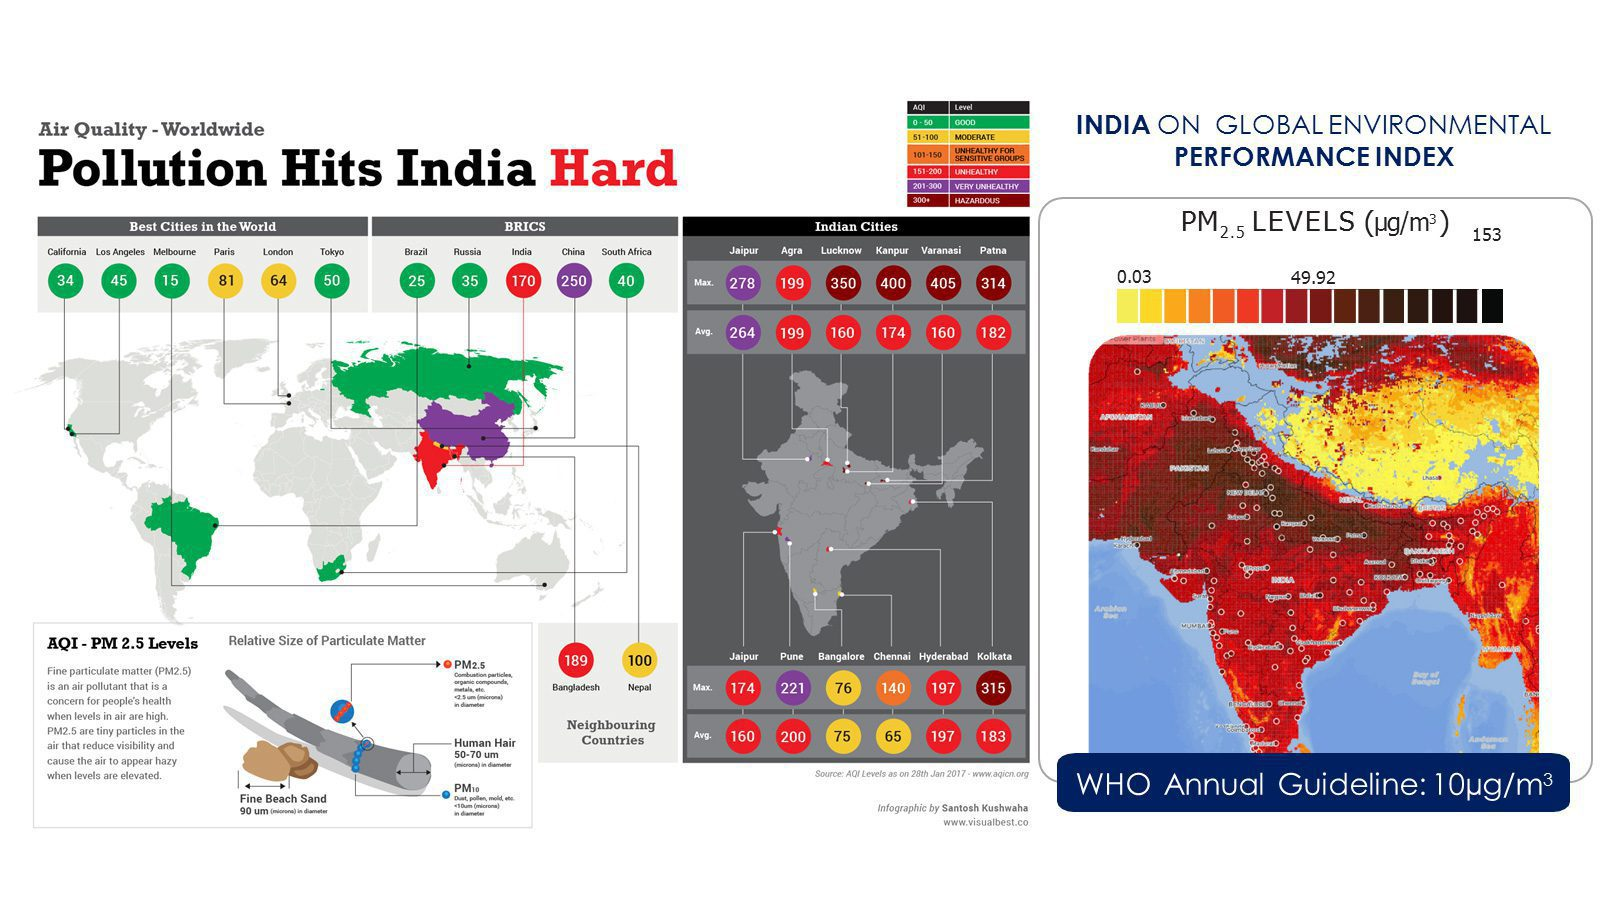 Air pollution hits India hard